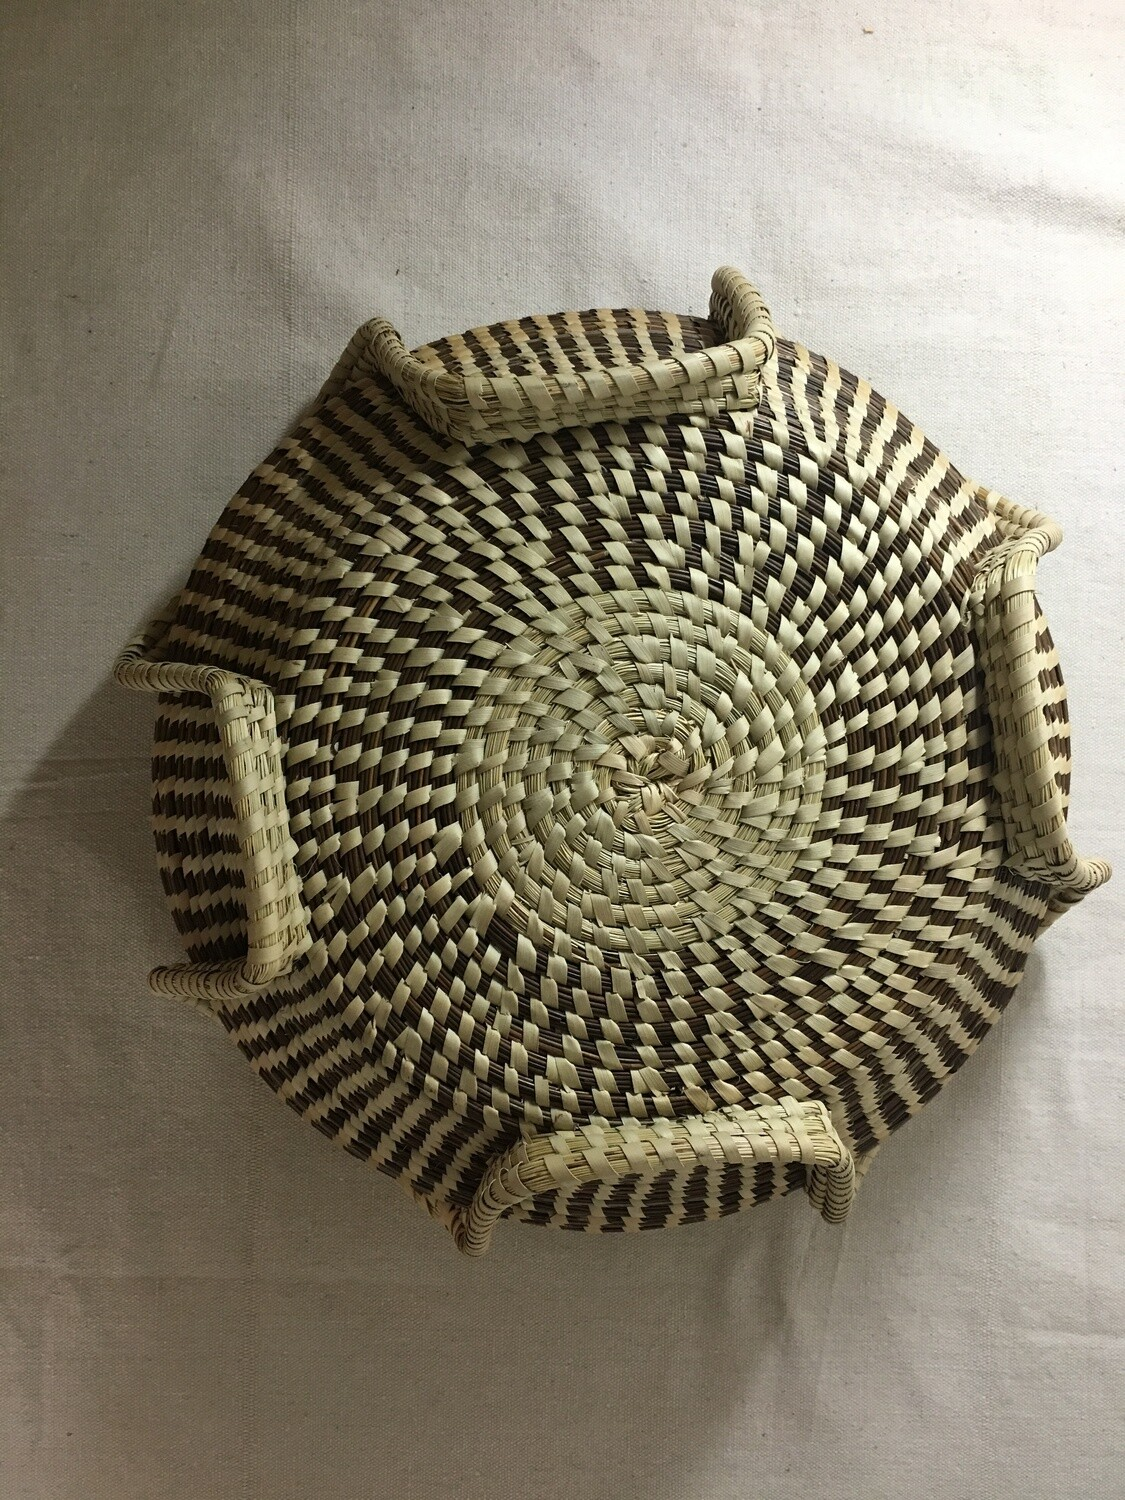 Ribbed vase Sweetgrass Basket